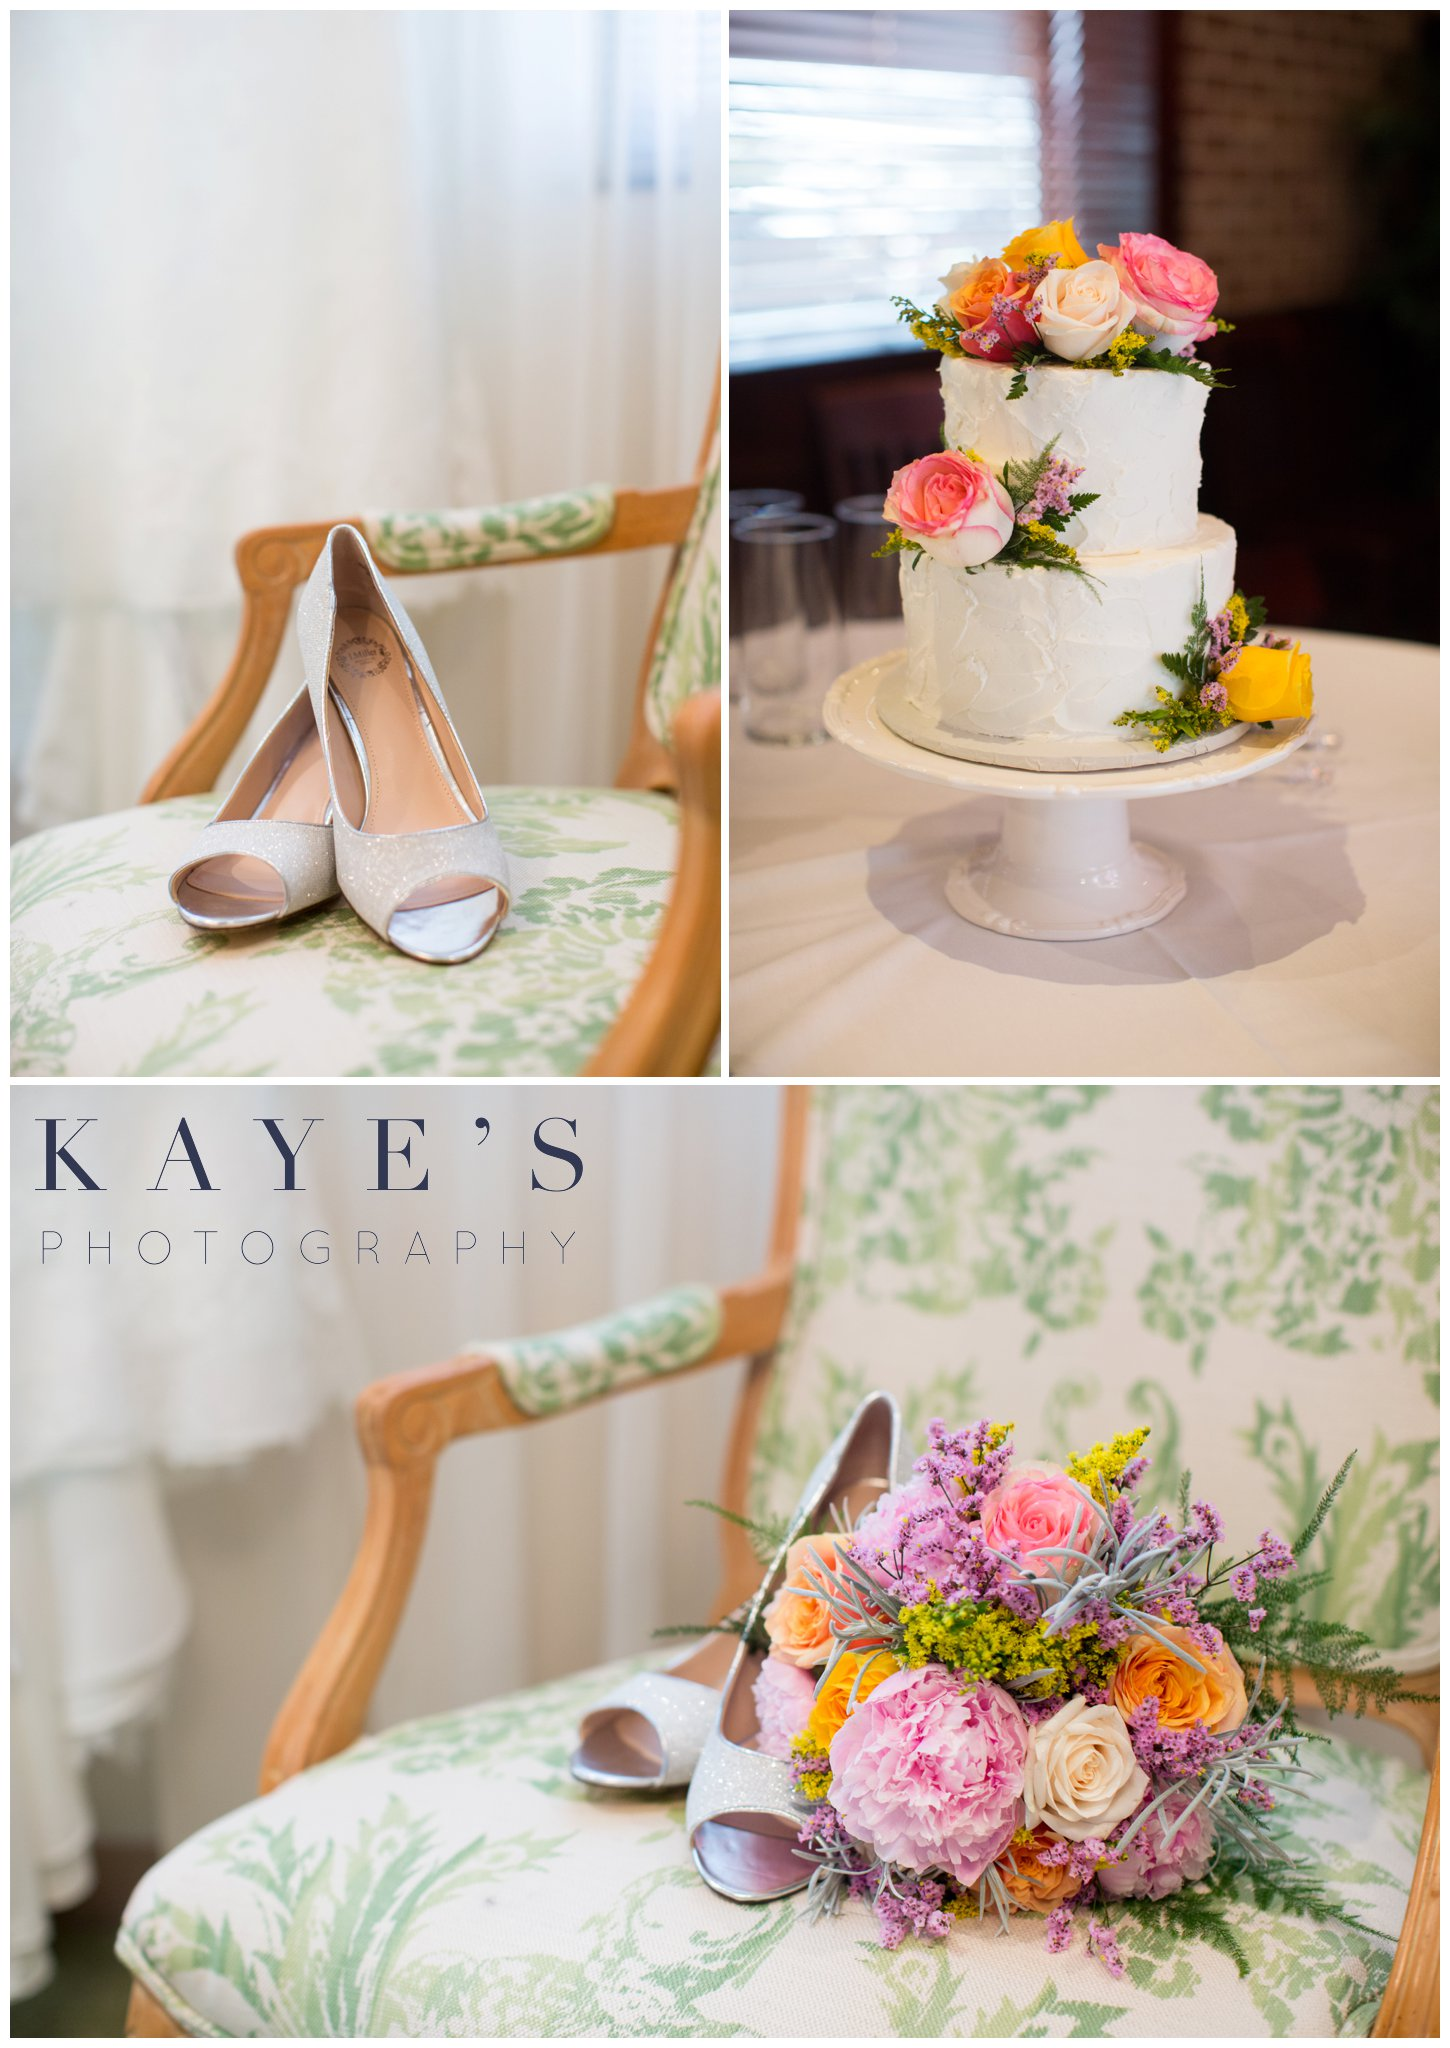 grand blanc wedding ideas, grand blanc wedding photos, grand blanc wedding portrait photographer brides shoes and flowers, wedding cake, shoes in chair